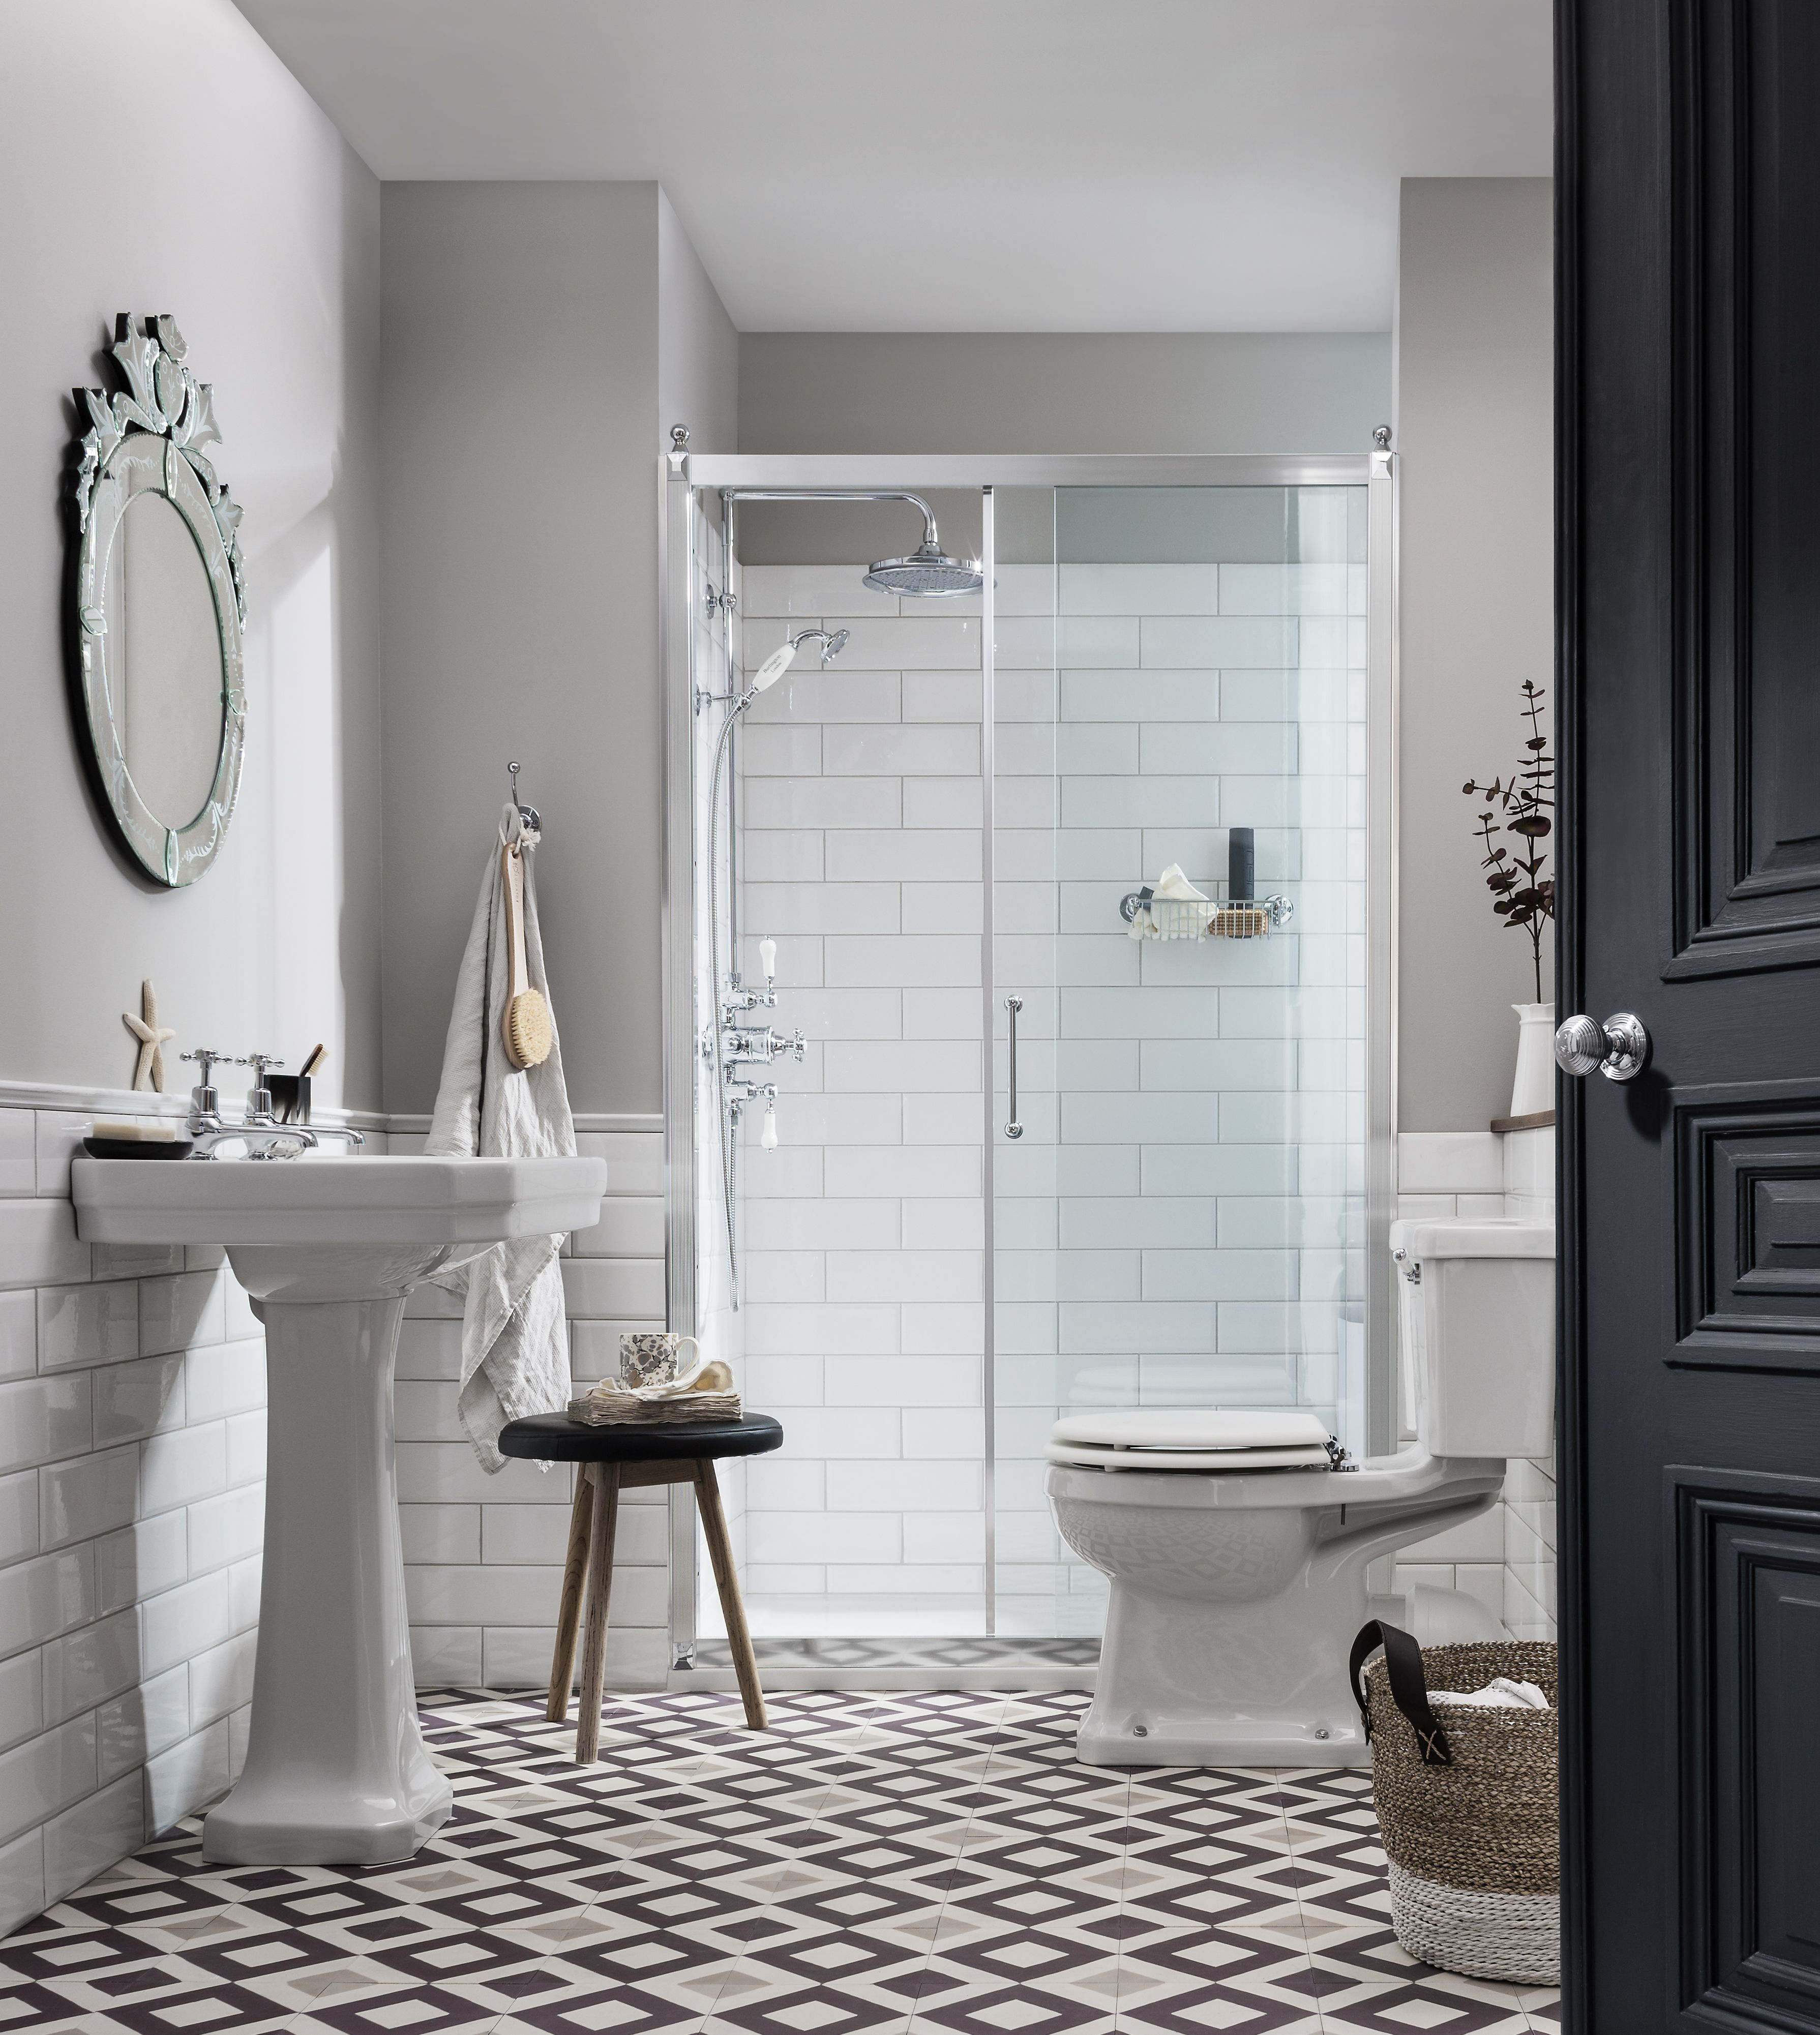 Bathrooms for sale uk - Achieve The Perfect Uptown Bathroom For Less With Burlington Bathrooms Big Bathroom Sale On Now